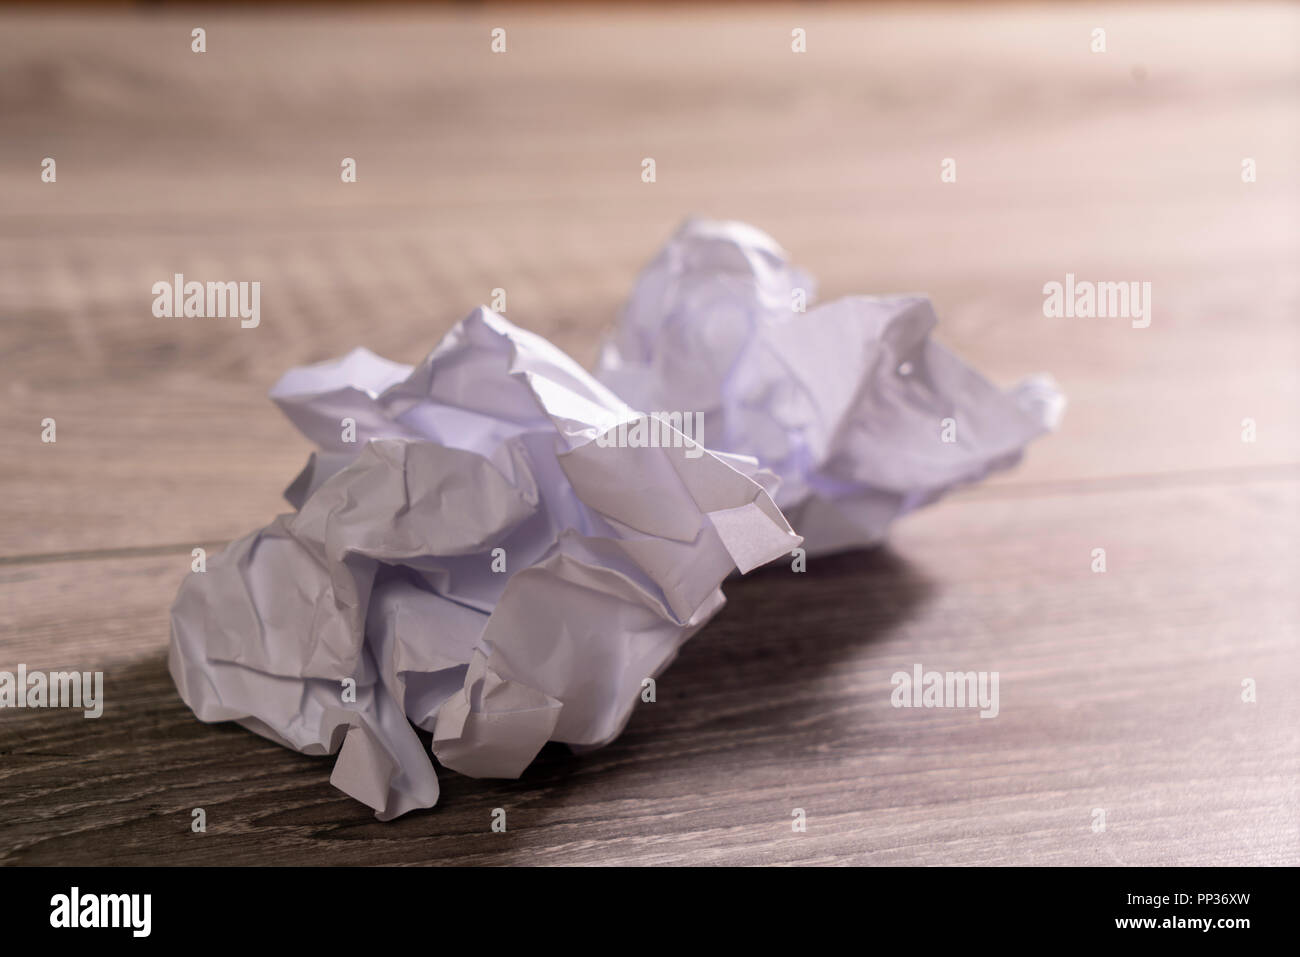 crumpled white sheets of paper - Stock Image